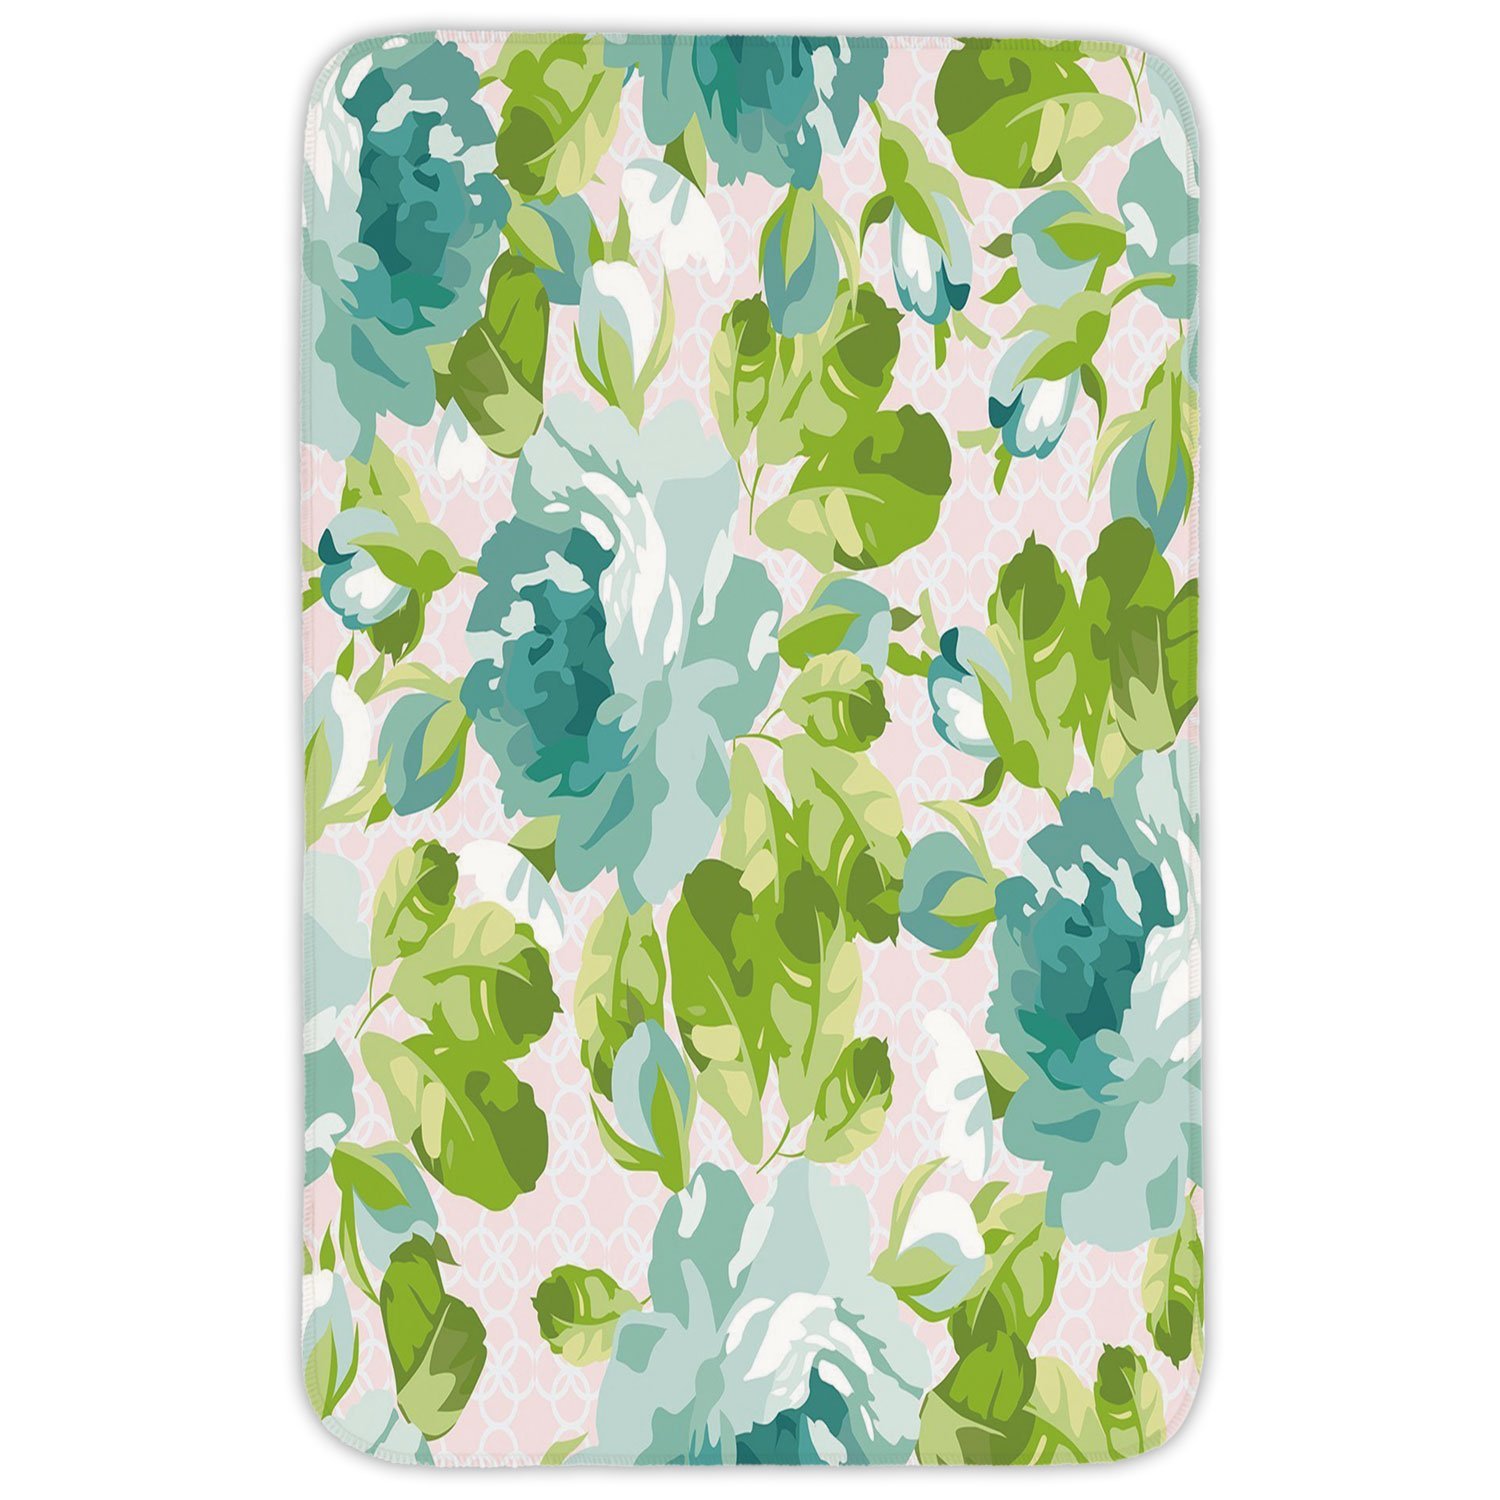 Rectangular Area Rug Mat Rug,Shabby Chic Decor,Tropical Botany Garden Theme Blue Roses Leaves Bouquets,Turquoise Green Light Pink,Home Decor Mat with Non Slip Backing